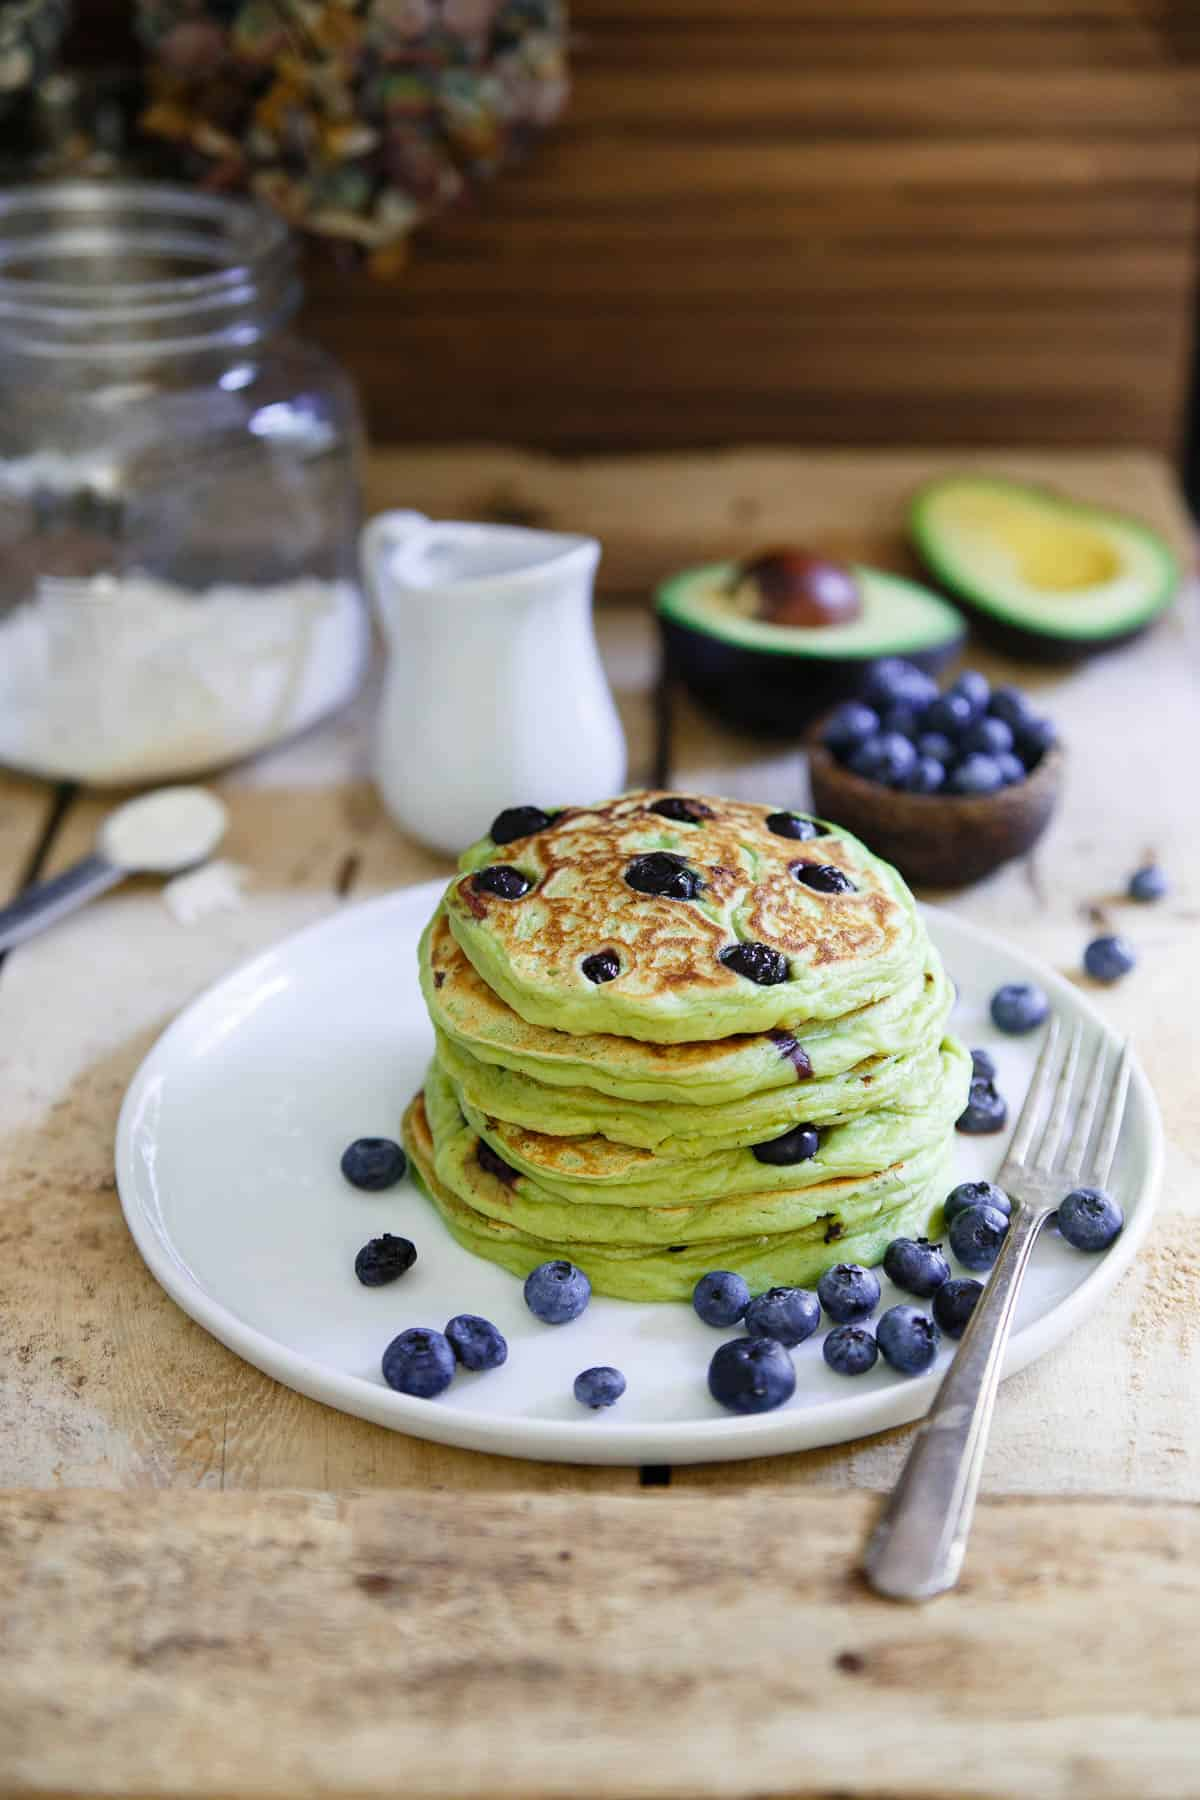 These avocado pancakes are packed with fresh blueberries, fluffy, thick and when topped with a poached egg, the perfect combination of savory and sweet.